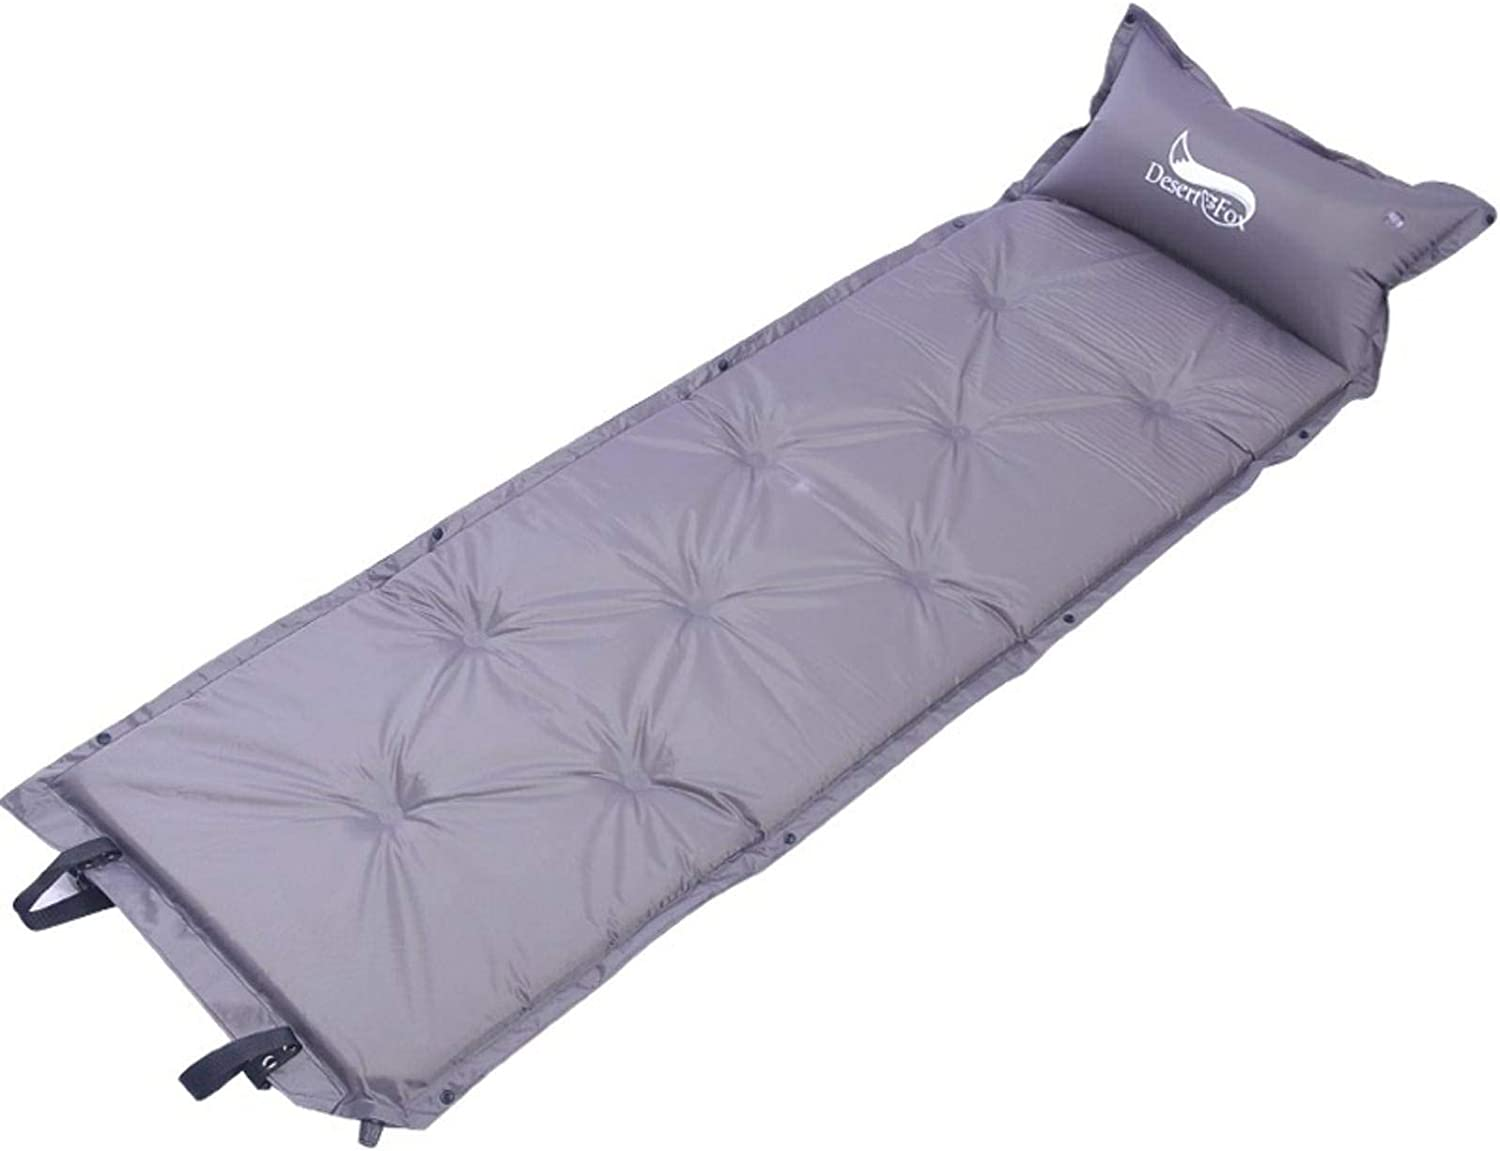 N\C Self Our shop most popular Inflating Sleeping Pad Air Pillo Tent Mattress Attached Max 59% OFF